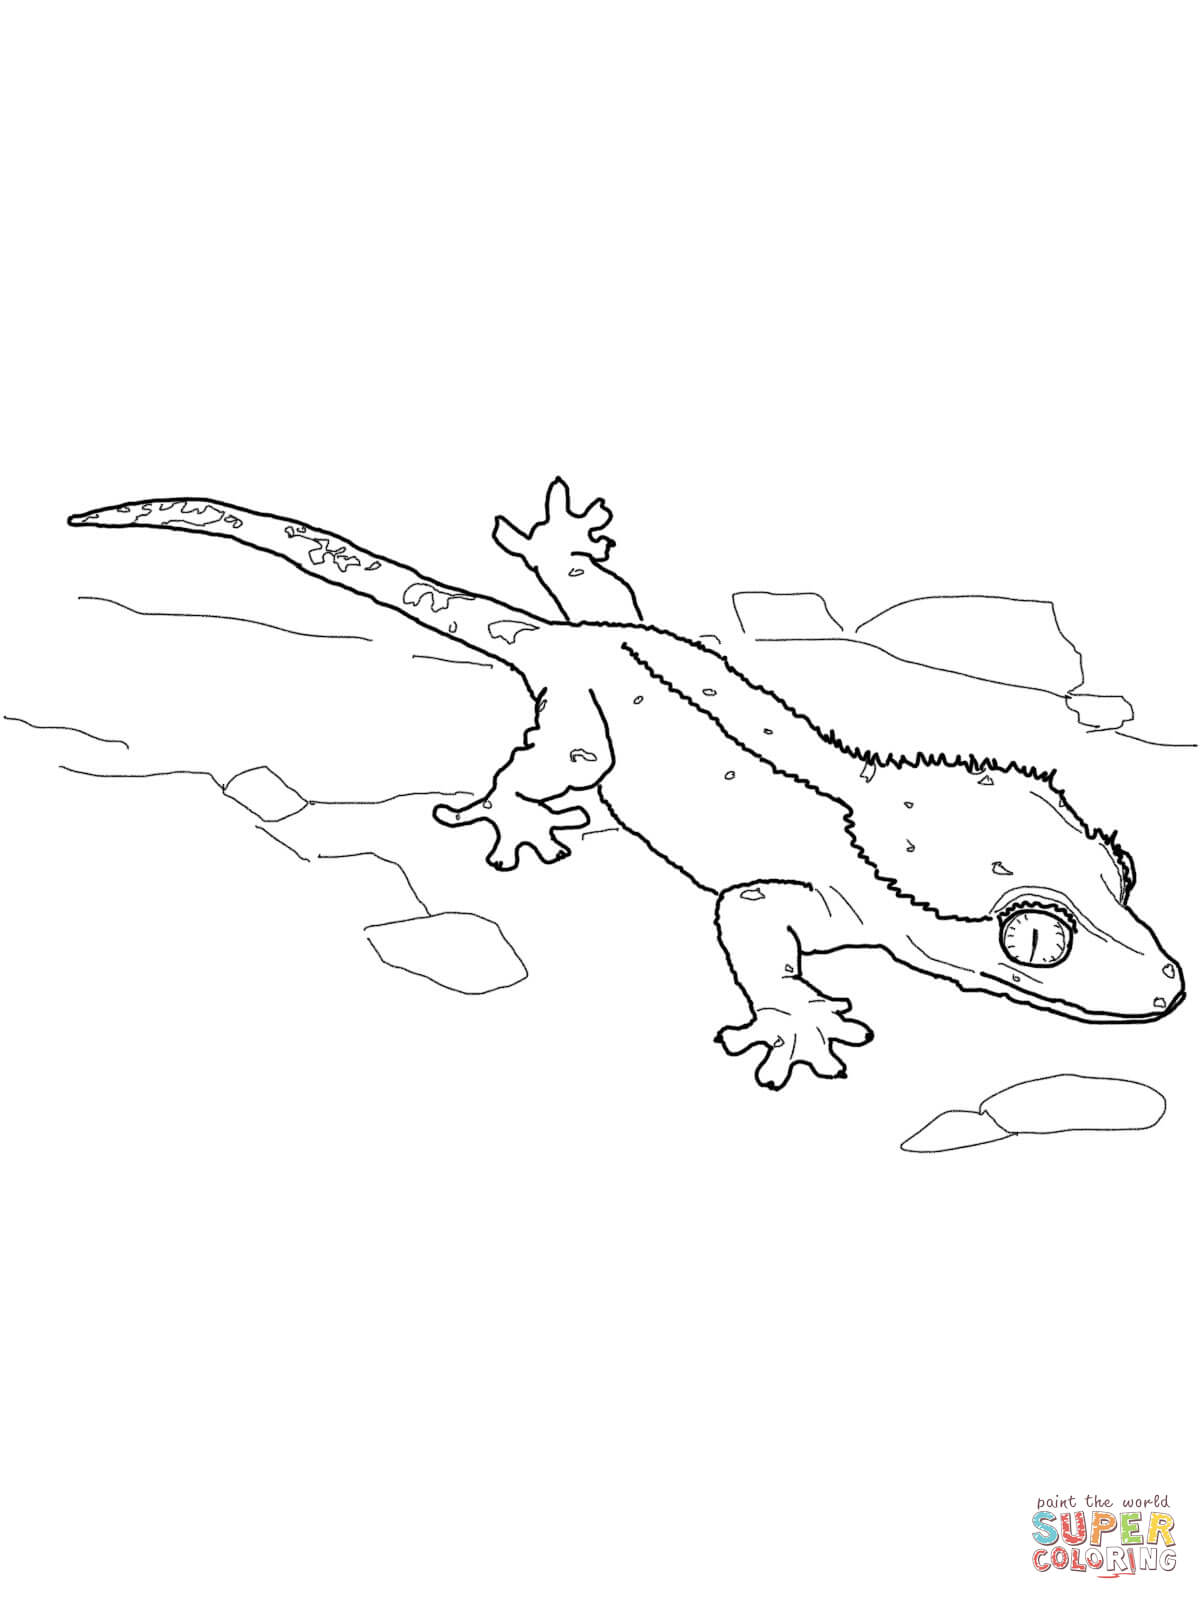 1200x1600 Leopard Gecko Coloring Page Free Printable Coloring Pages Leopard